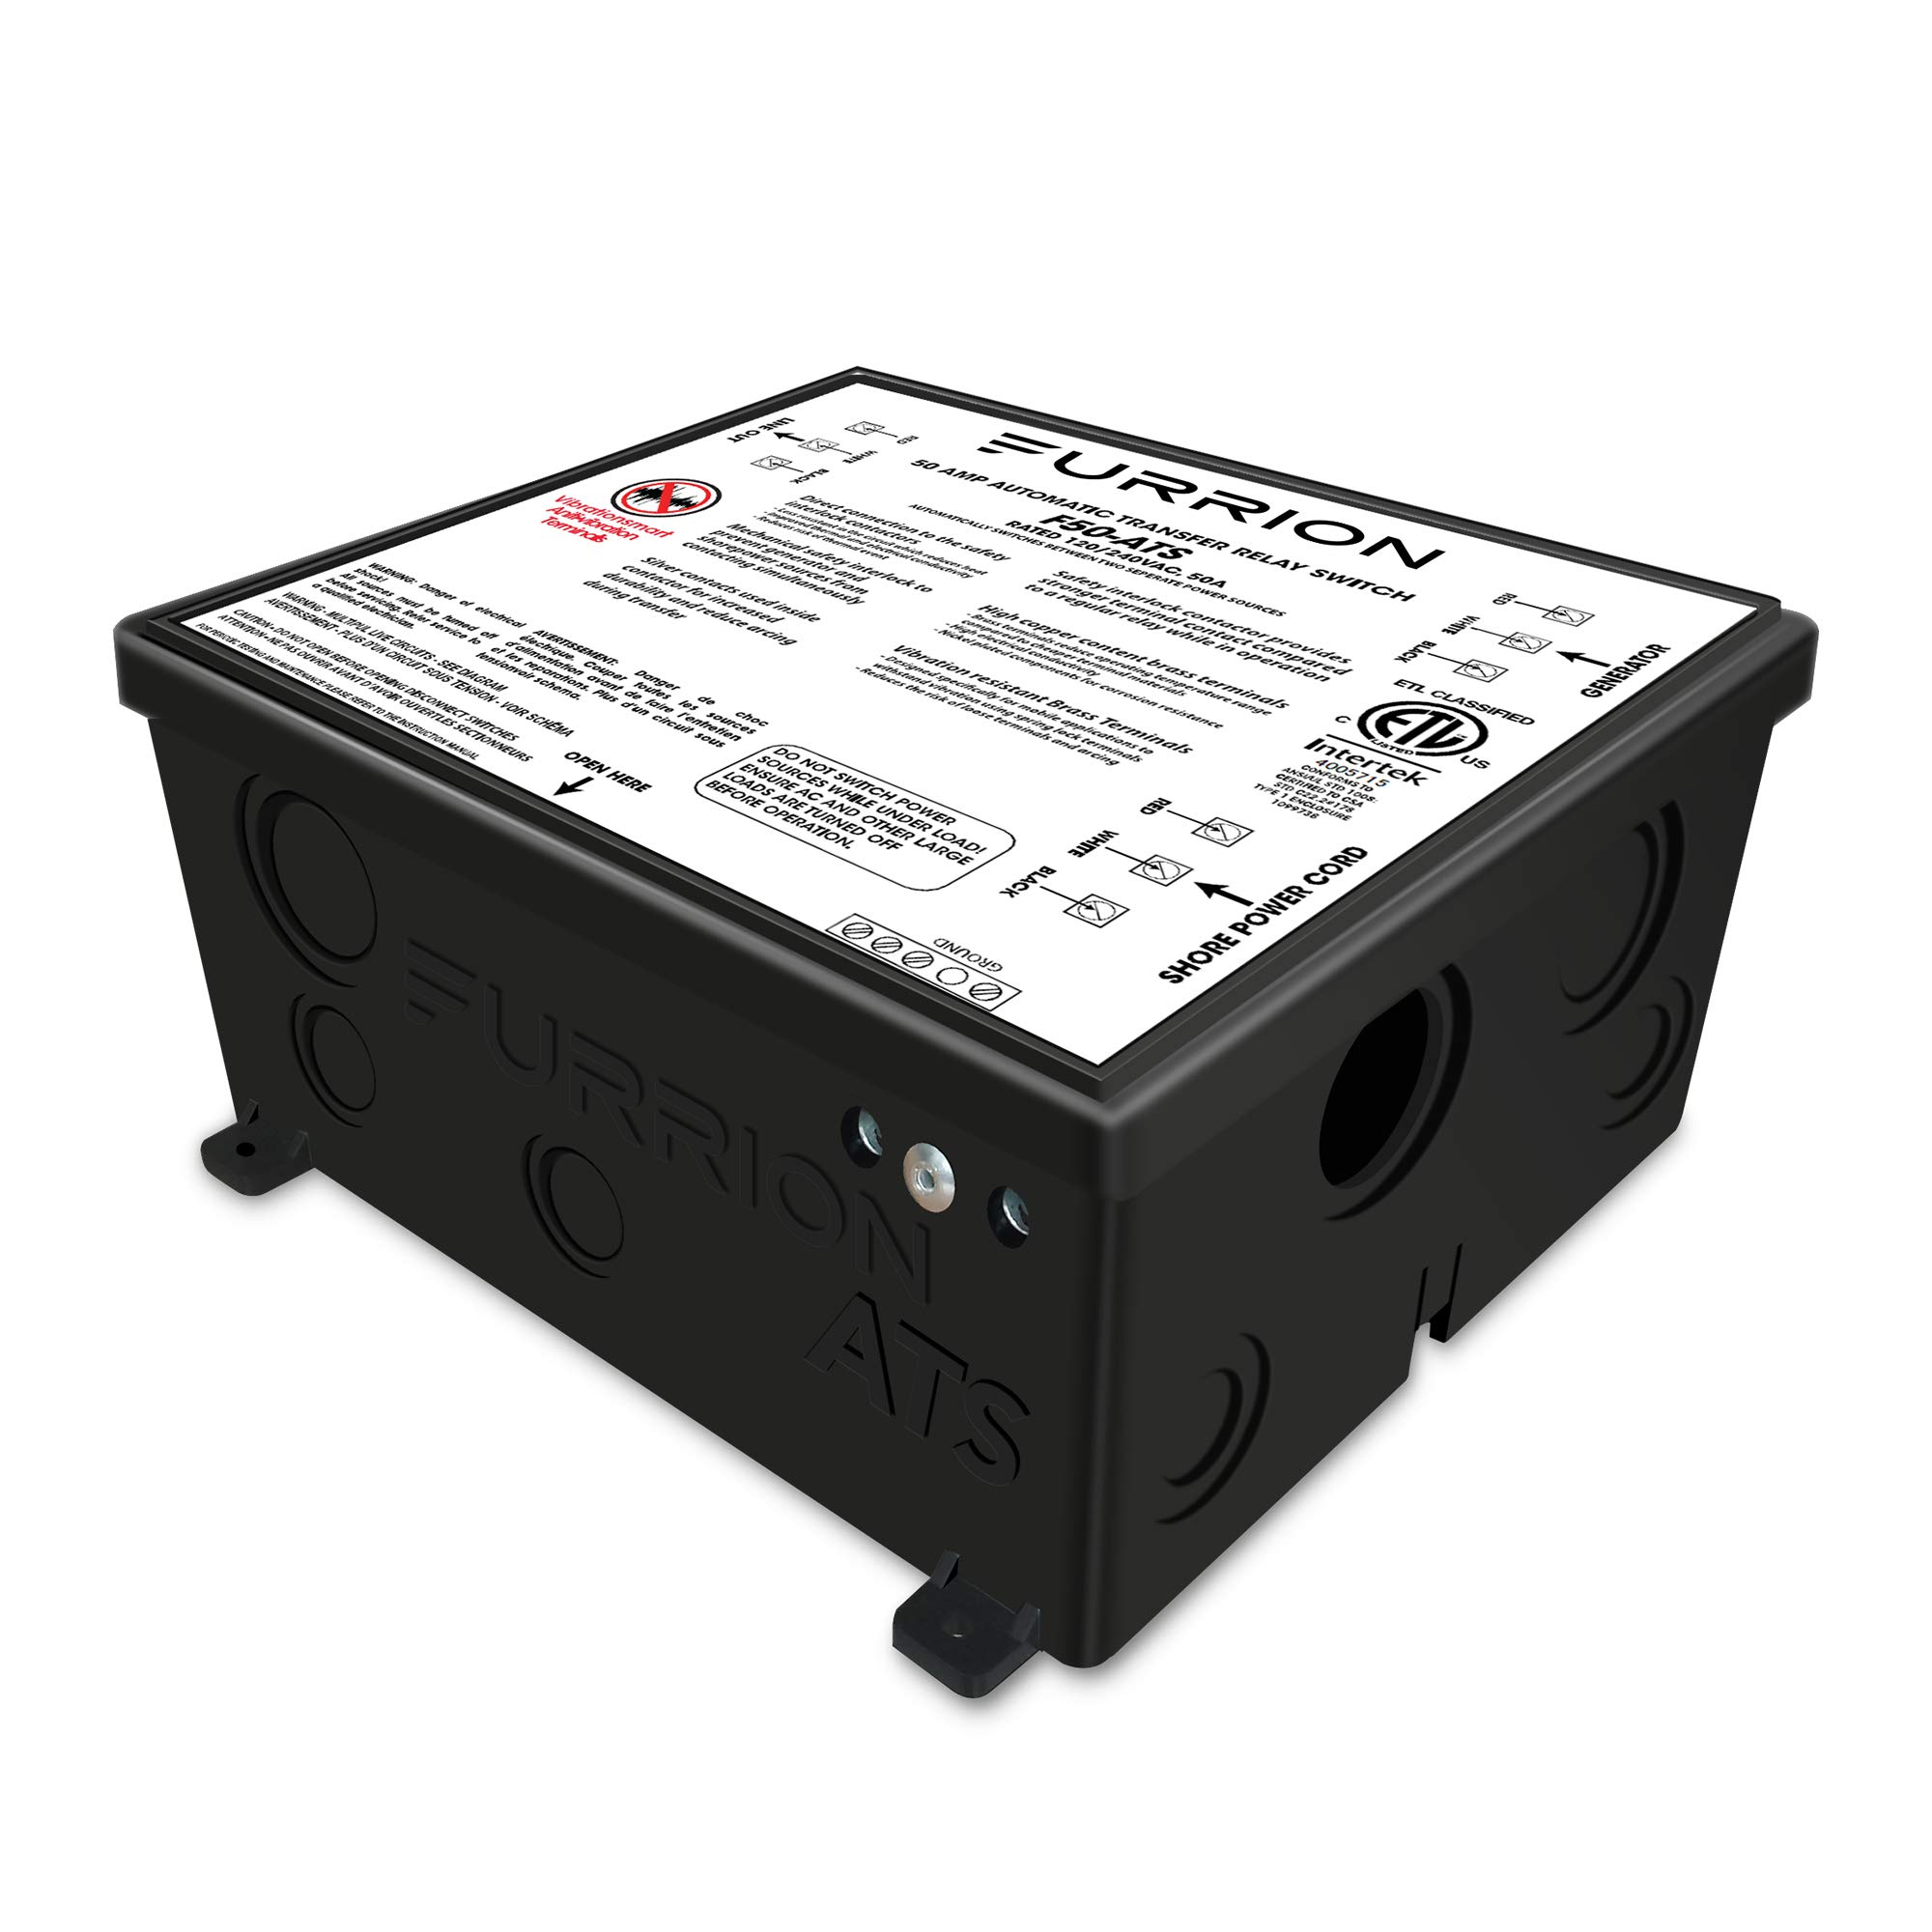 Furrion F50 ATS Automatic Transfer Switch